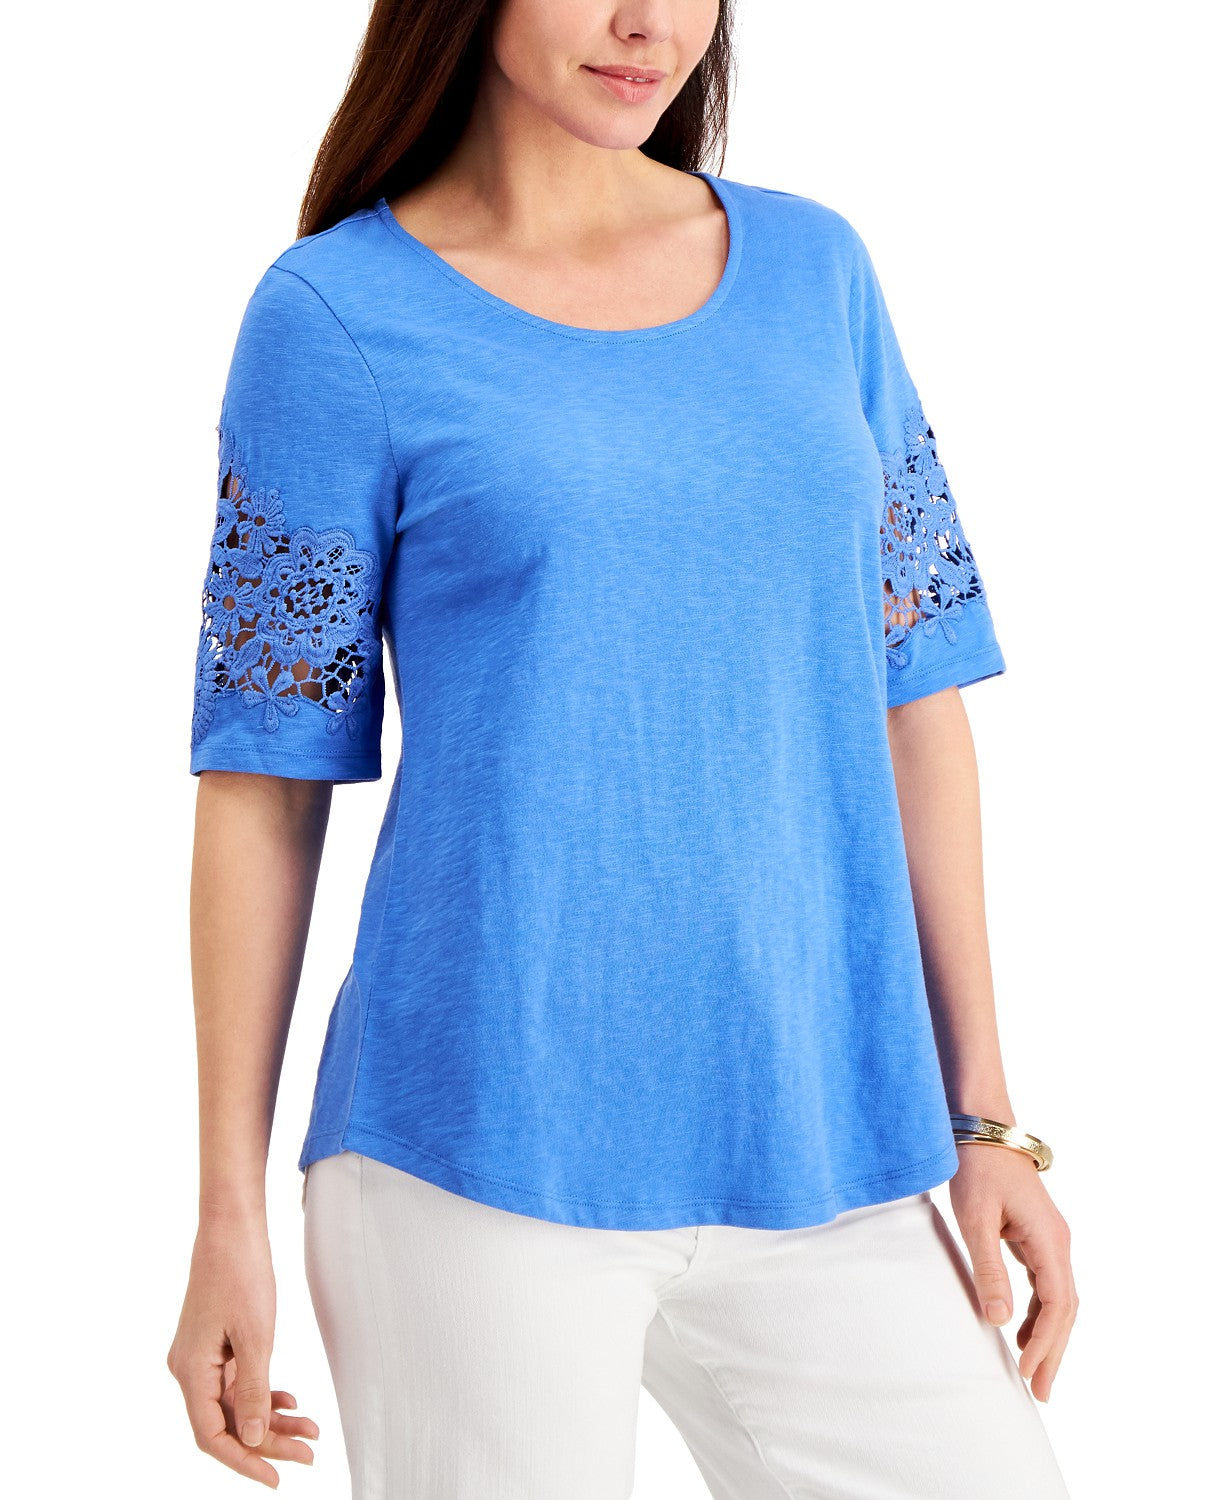 Charter Club Cotton Lace-Trimmed Top